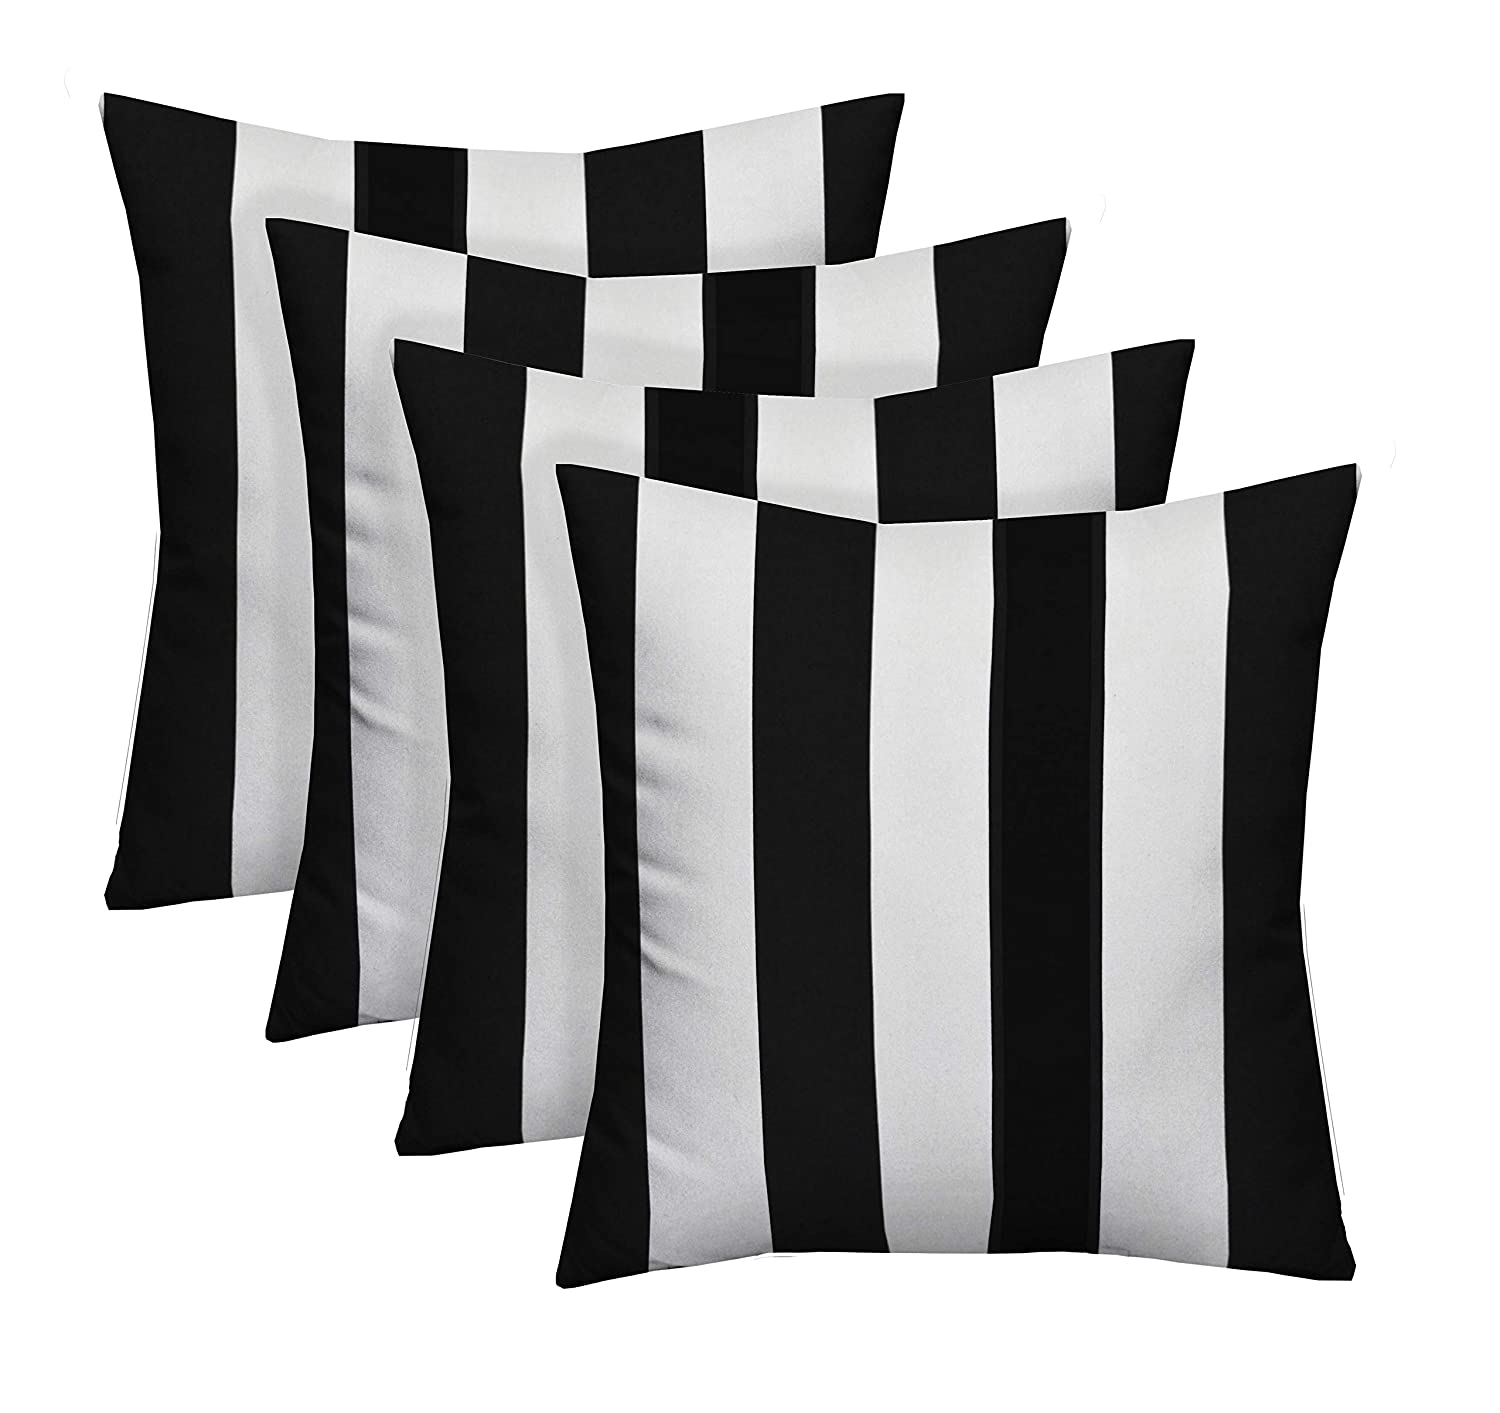 "Resort Spa Home Decor Set of 4 Indoor/Outdoor Square Decorative Throw/Toss Pillows Black and White Stripe Fabric Choose Size (17"" x 17"")"